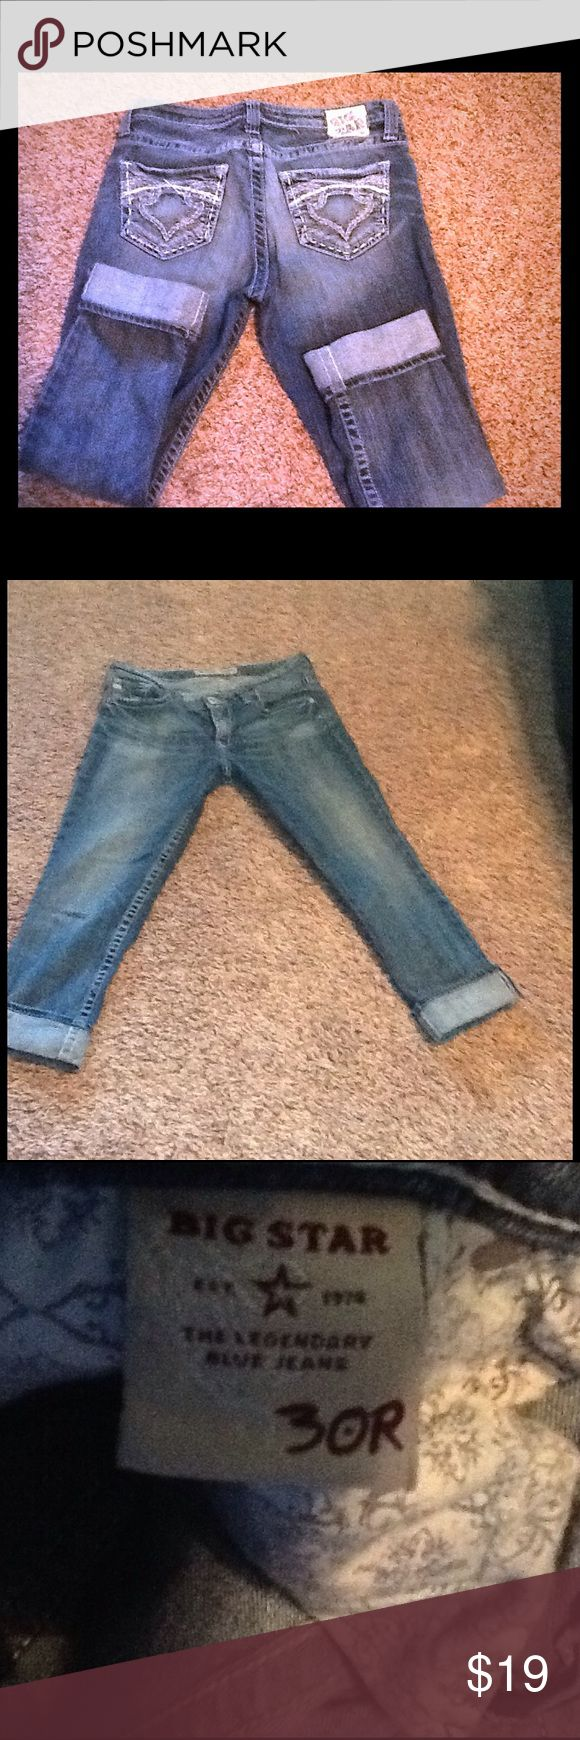 Big Star Maddie Skinny Jeans/ Capris REPOSH! Mid rise Skinny Maddie jeans that have been tailored to be capris ... Cuffs Can be let out to be jeans. Super cute and soft. Price reflects alteration. Big Star Jeans